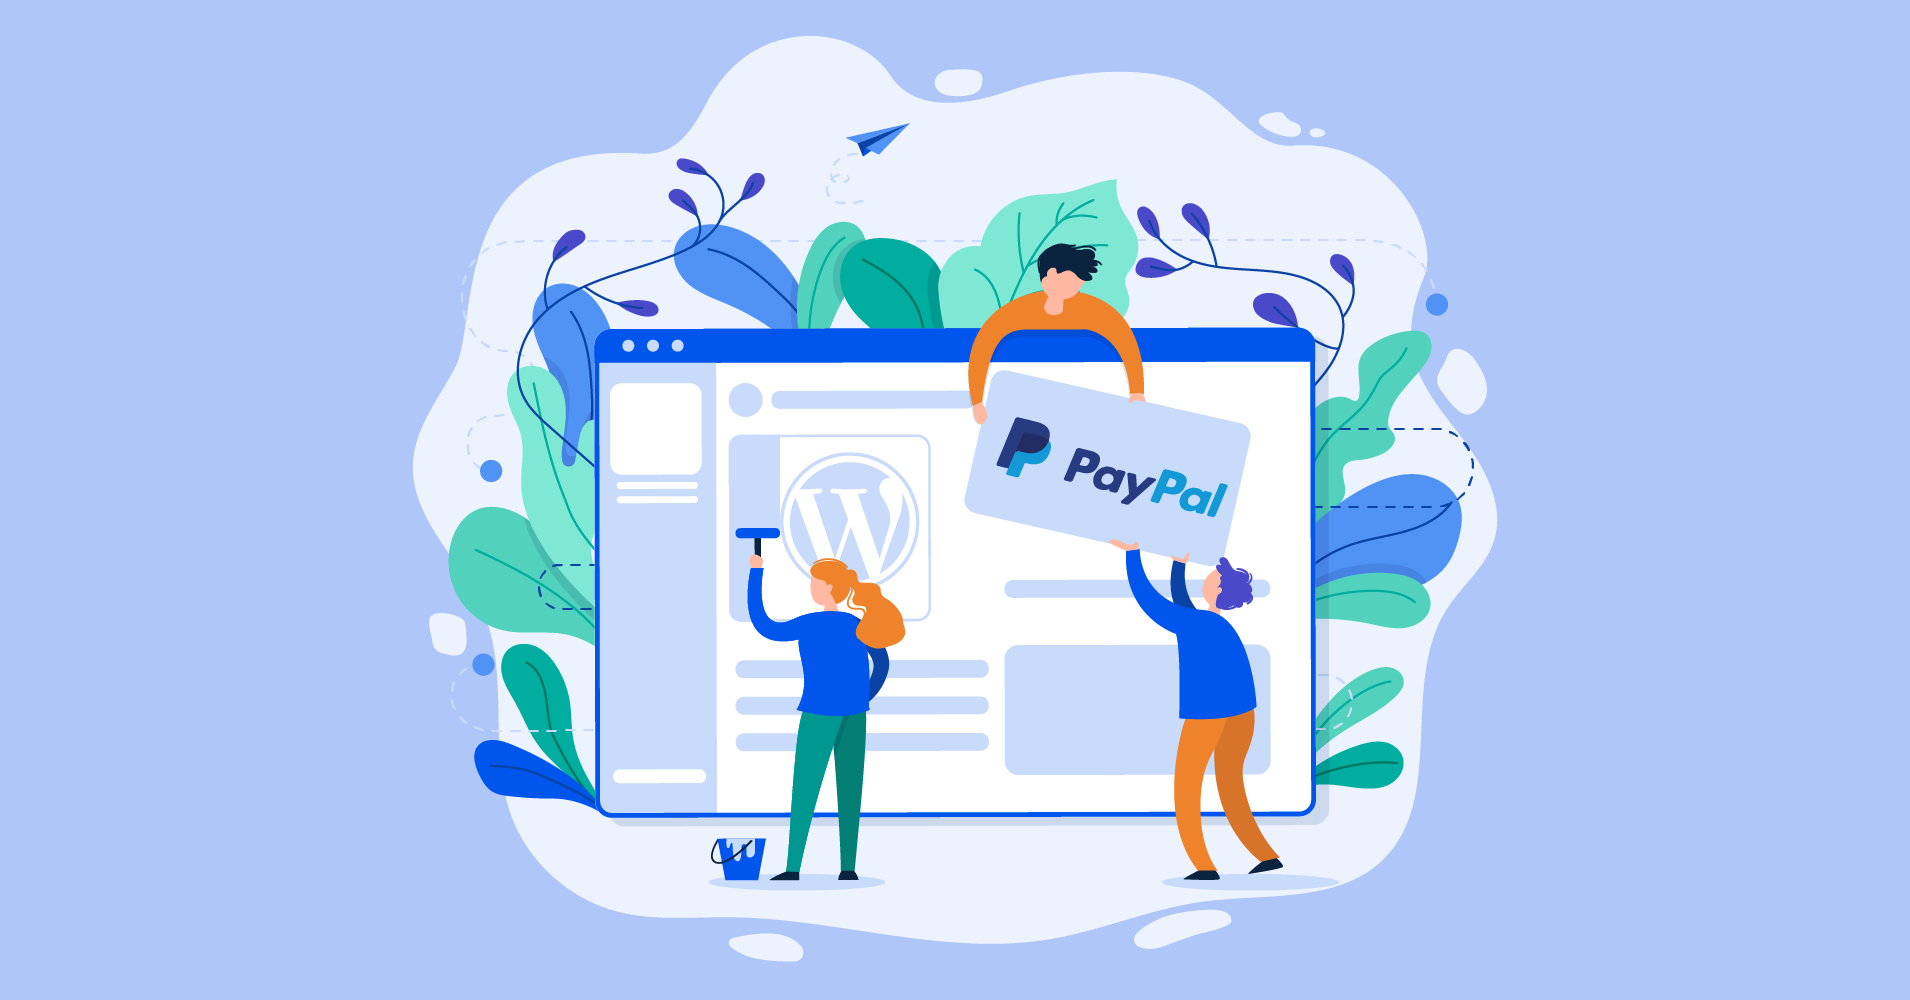 How to connect PayPal into WordPress